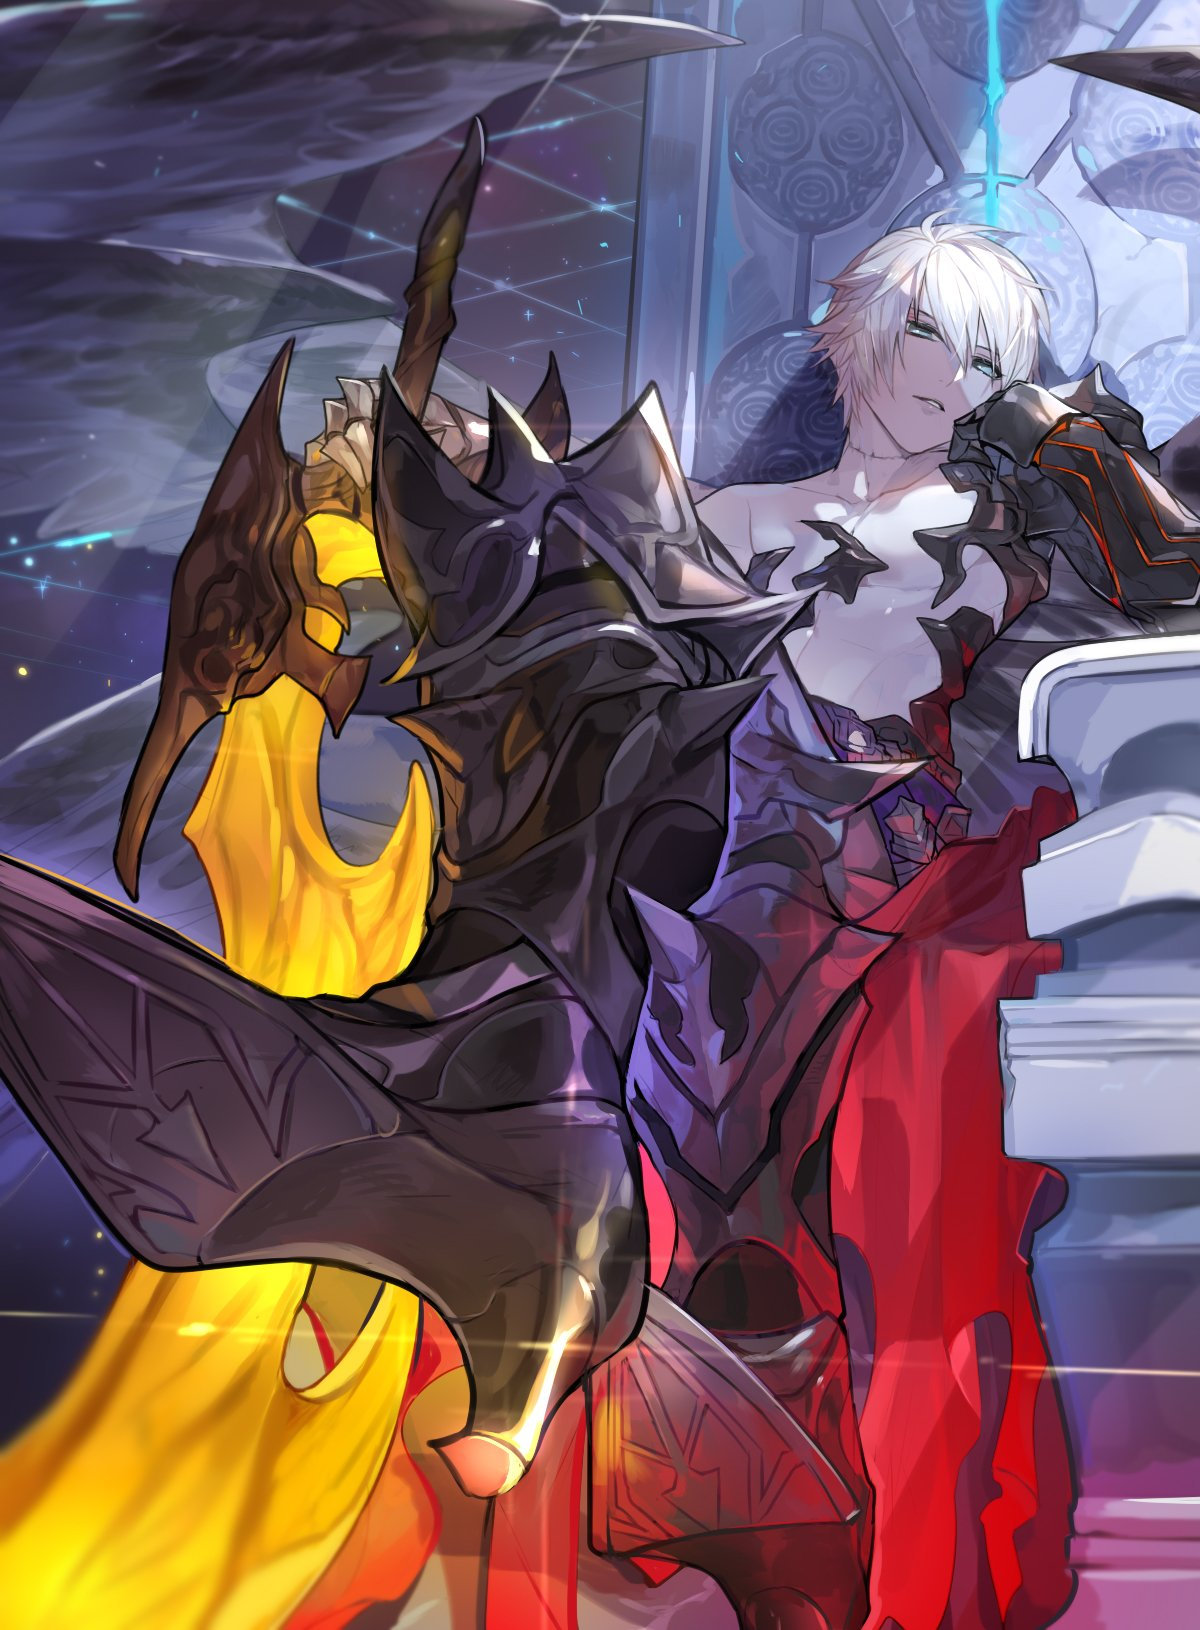 1boy black_footwear blue_eyes gauntlets granblue_fantasy hair_between_eyes high_heels highres holding holding_sword holding_weapon legs_crossed looking_at_viewer lucilius_(granblue_fantasy) male_focus open_mouth picube525528 short_hair shoulder_armor silver_hair sword throne weapon white_hair